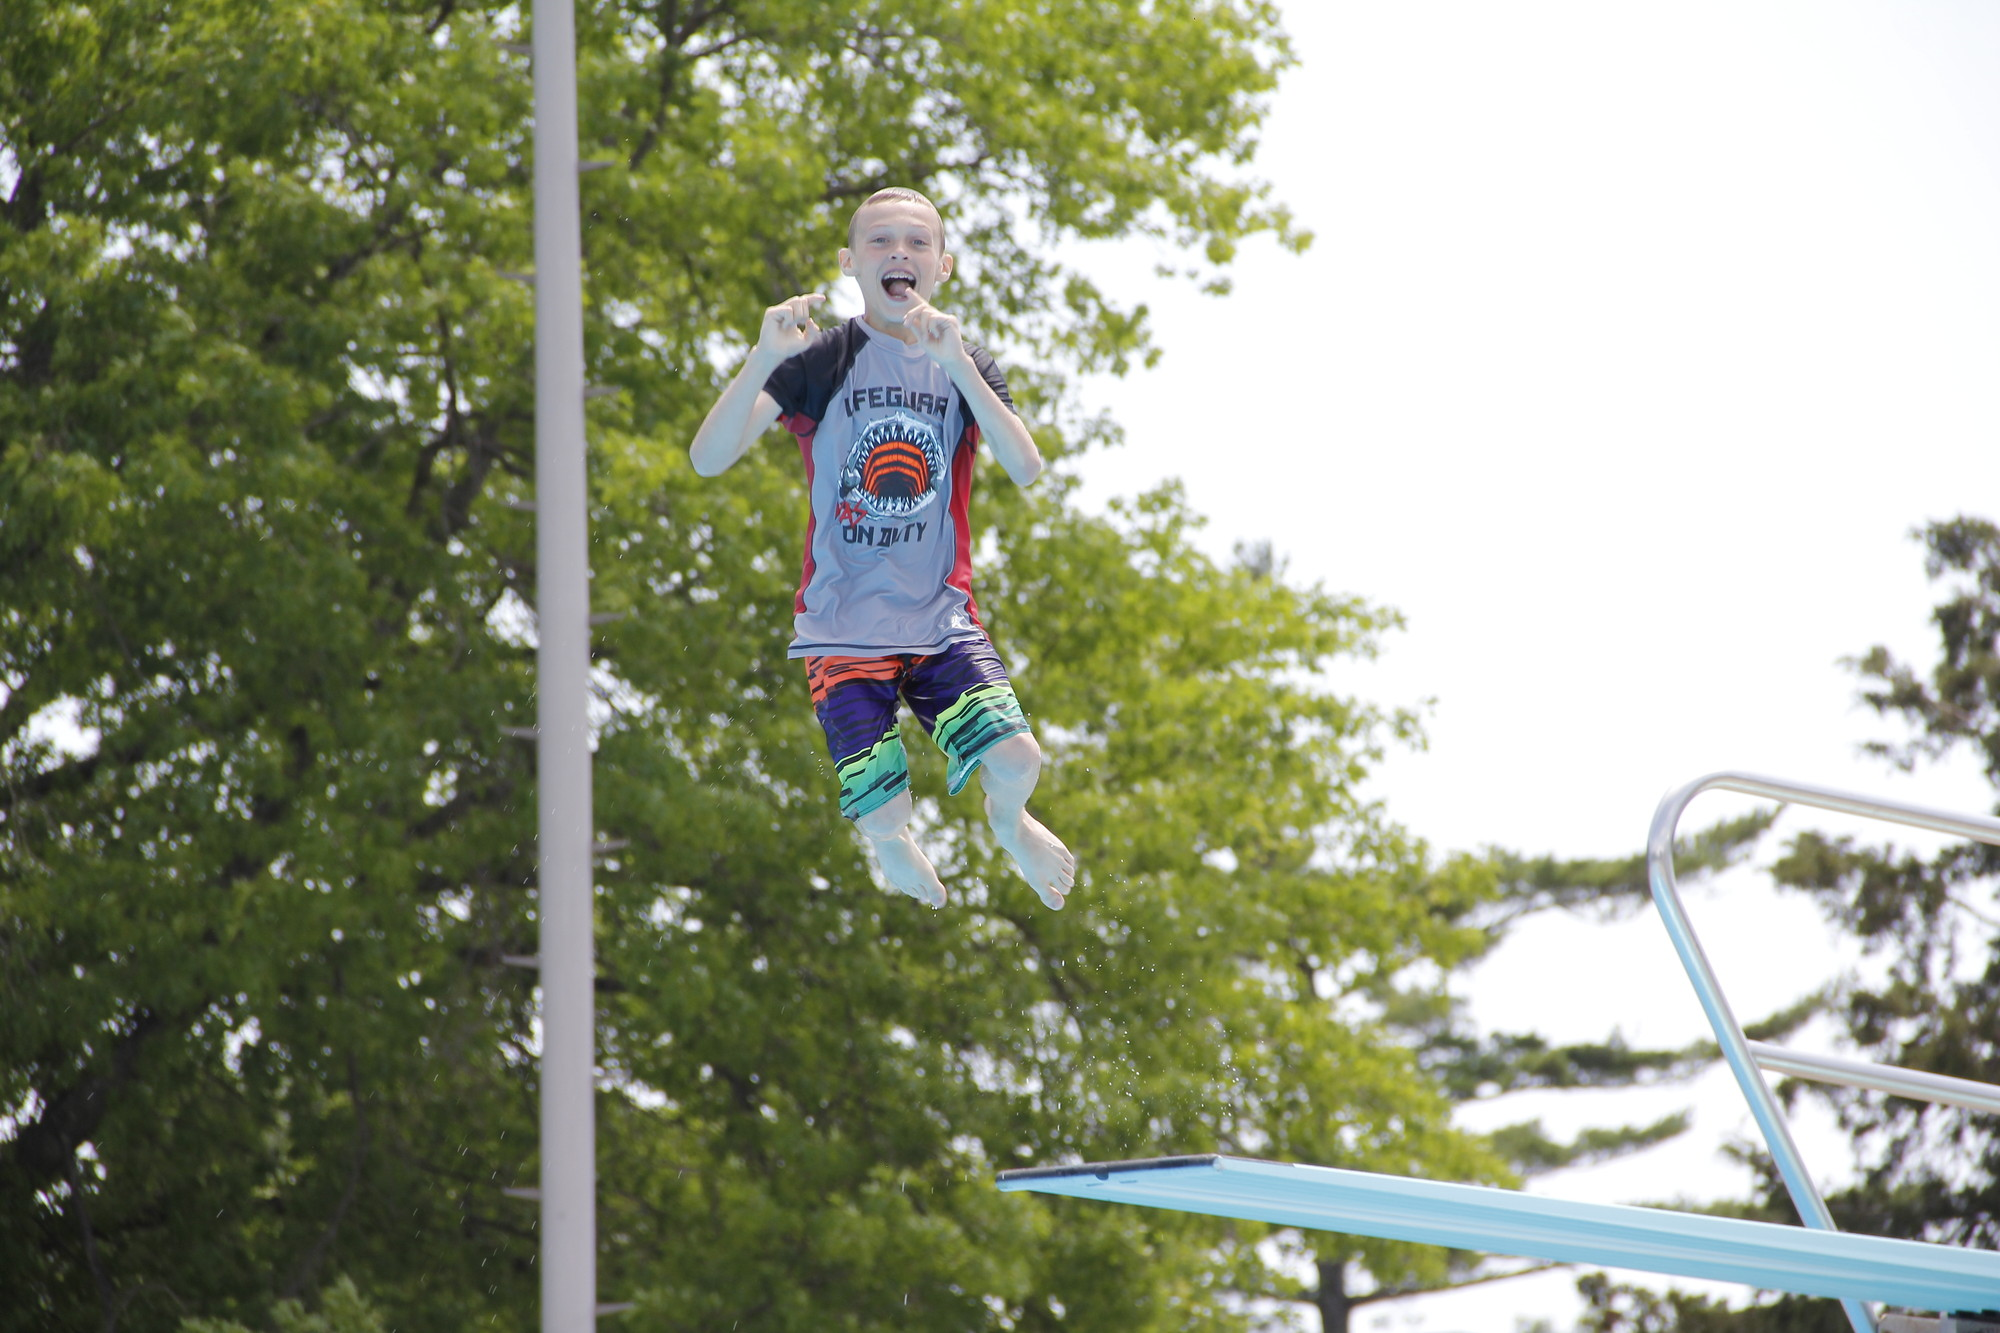 Anthony Cavanagh, 12, jumped, spun, dove and even posed for the camera on his various jumps off the diving board